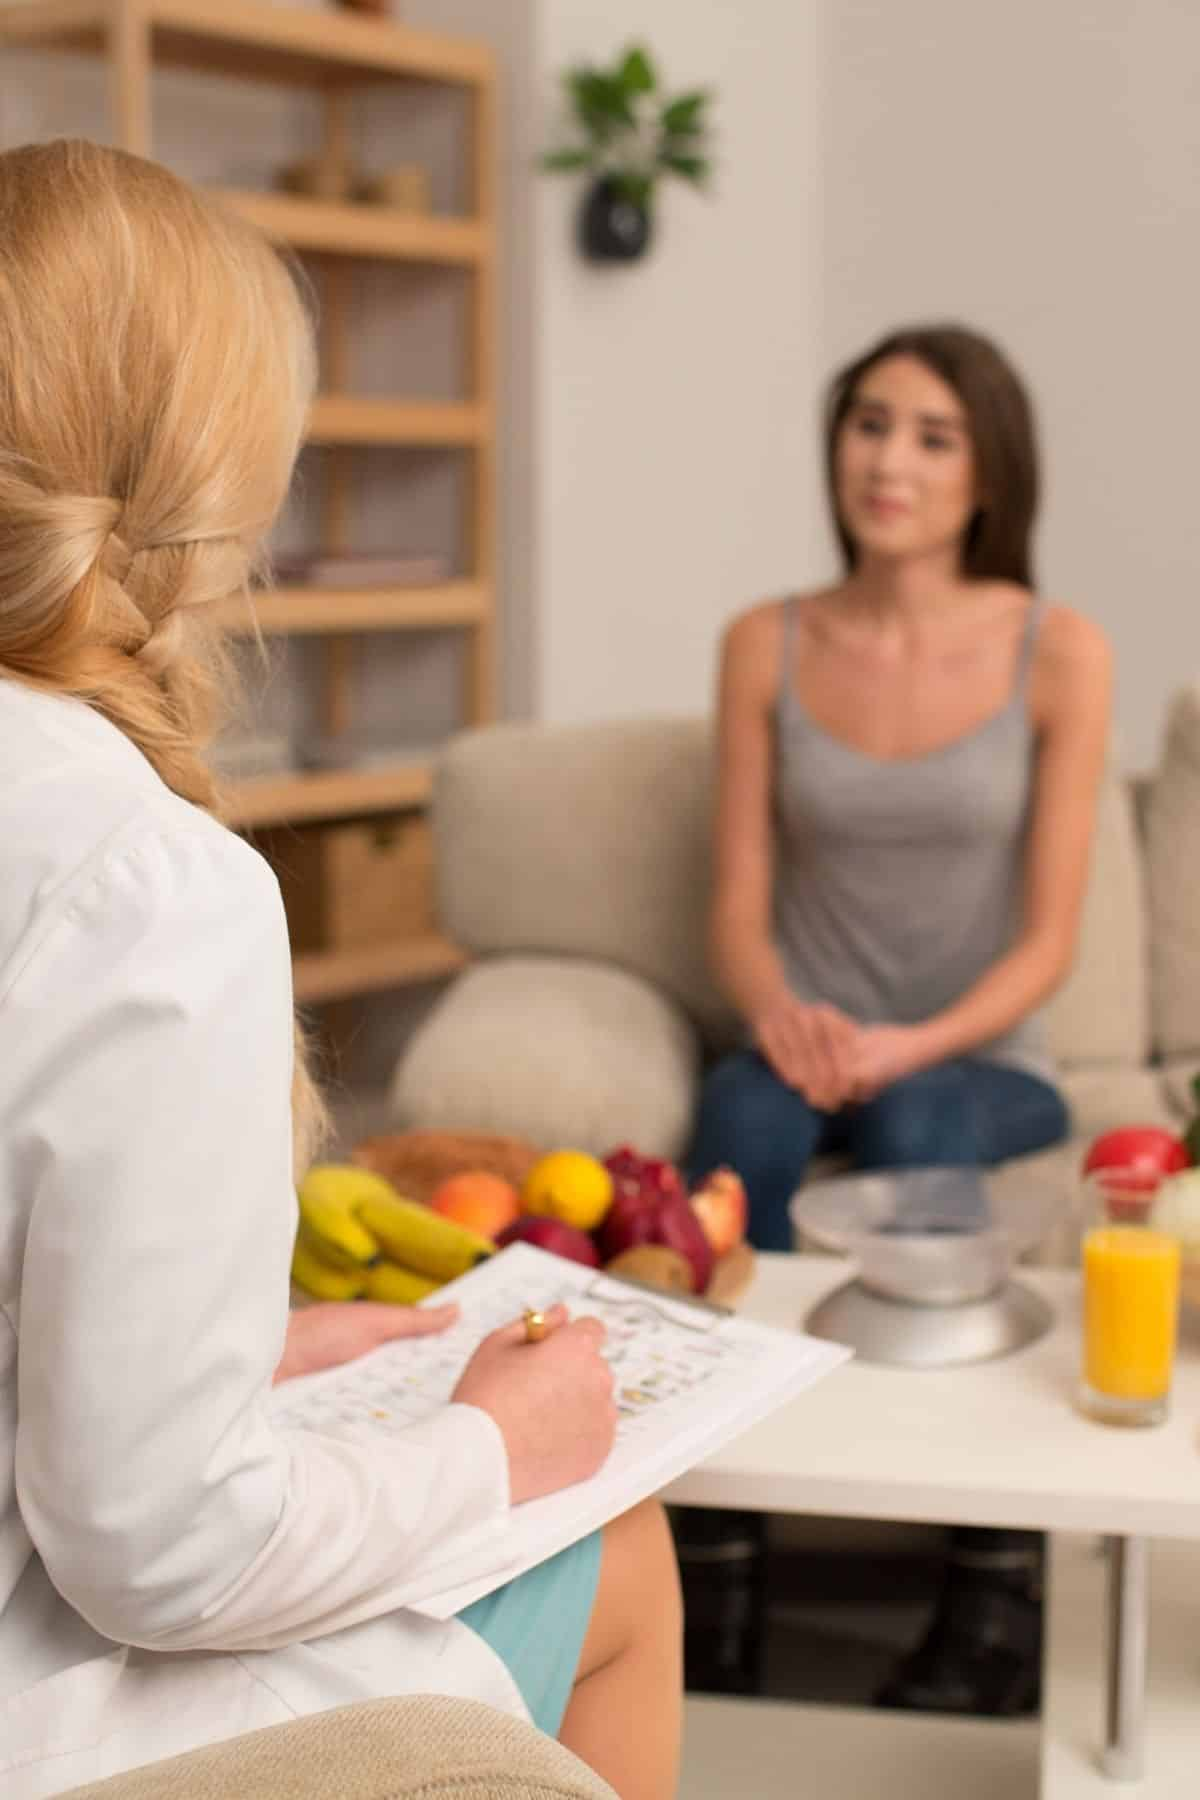 dietitian working with a young woman client